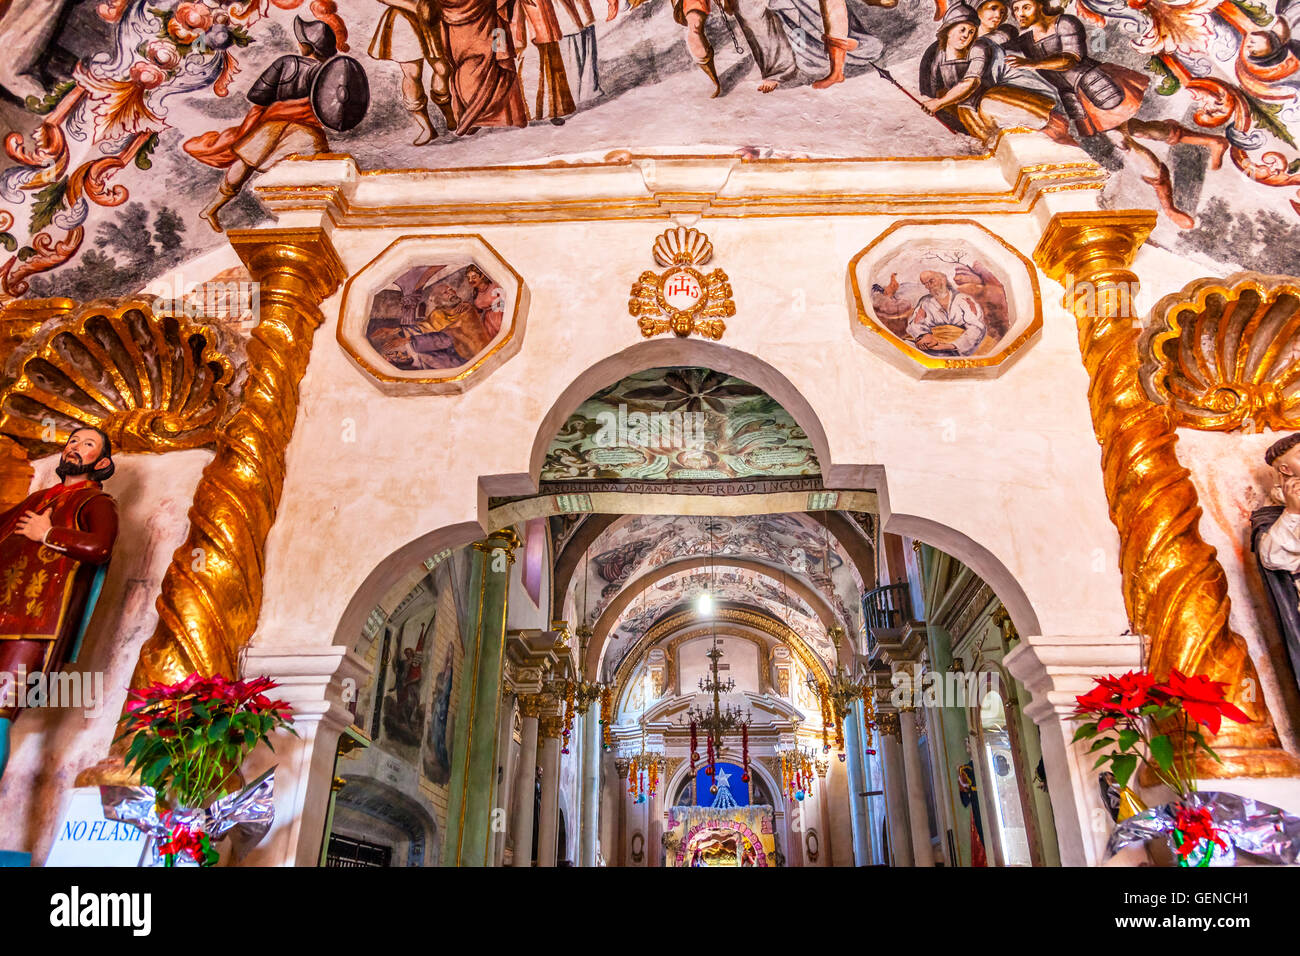 Frescoes Sanctuary Of Jesus Atotonilco Mexico Built In The 1700s Stock Photo Alamy